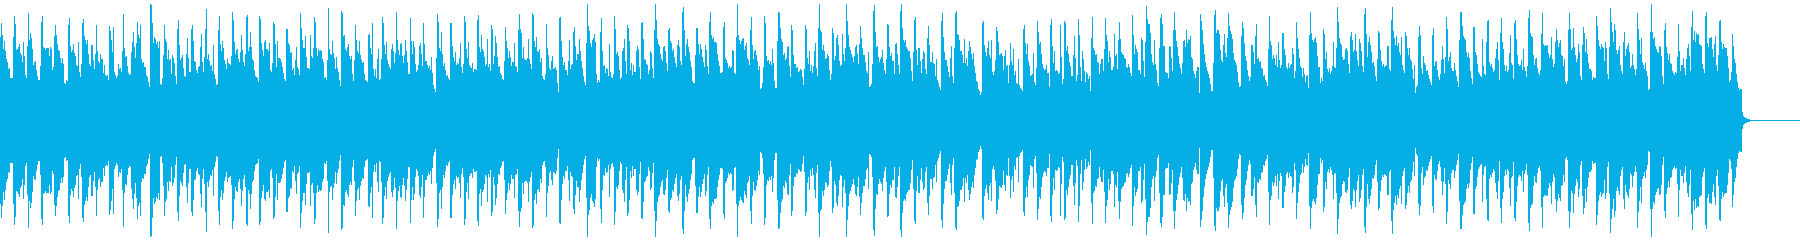 Handel rhythm and melody without a standard of award ceremony's reproduced waveform